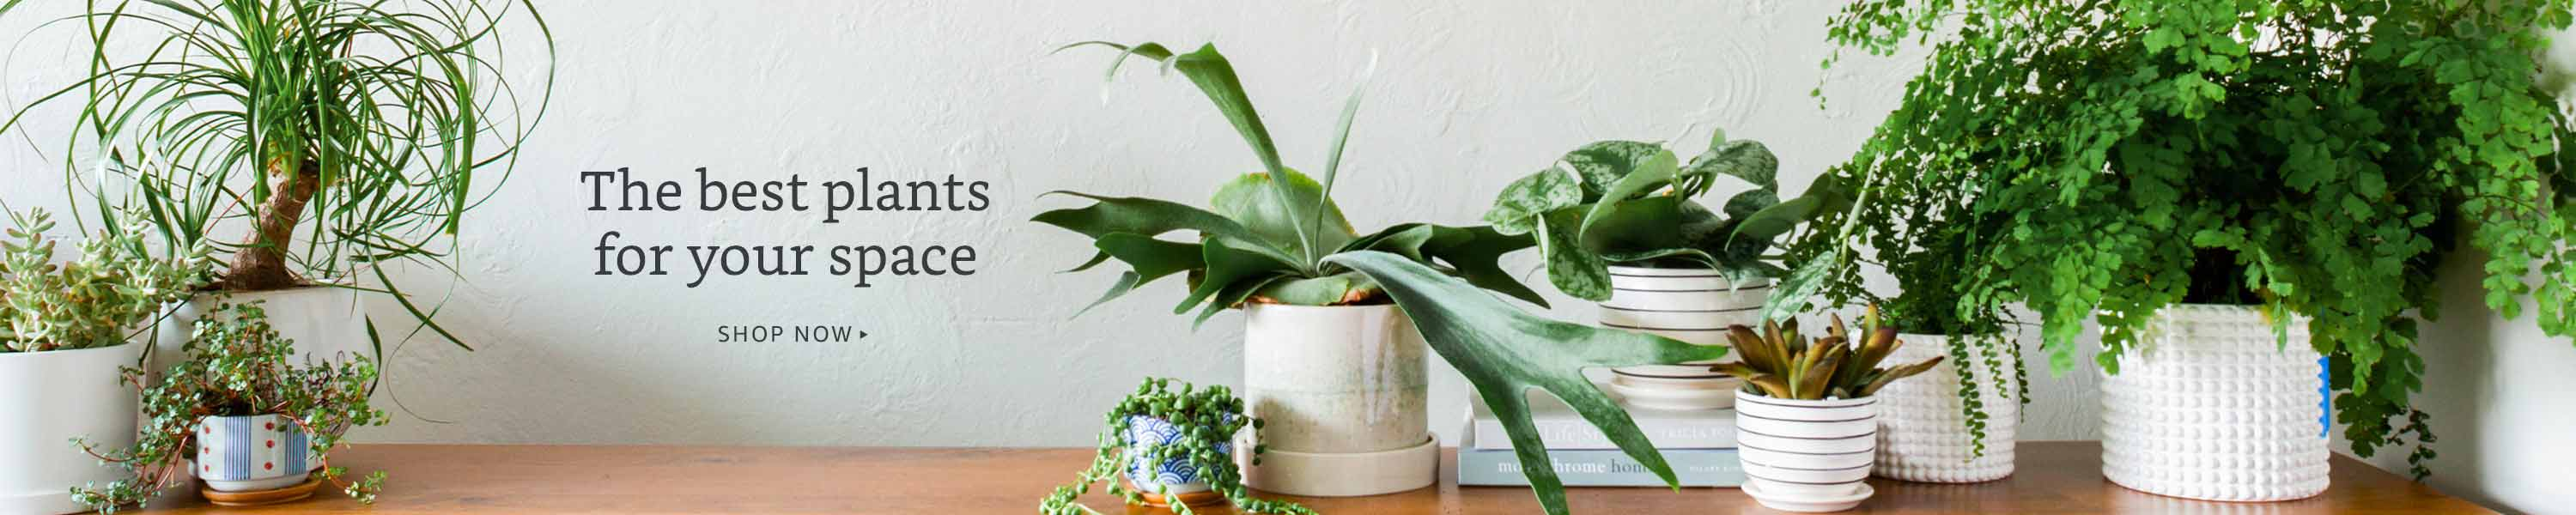 The best plants for your space